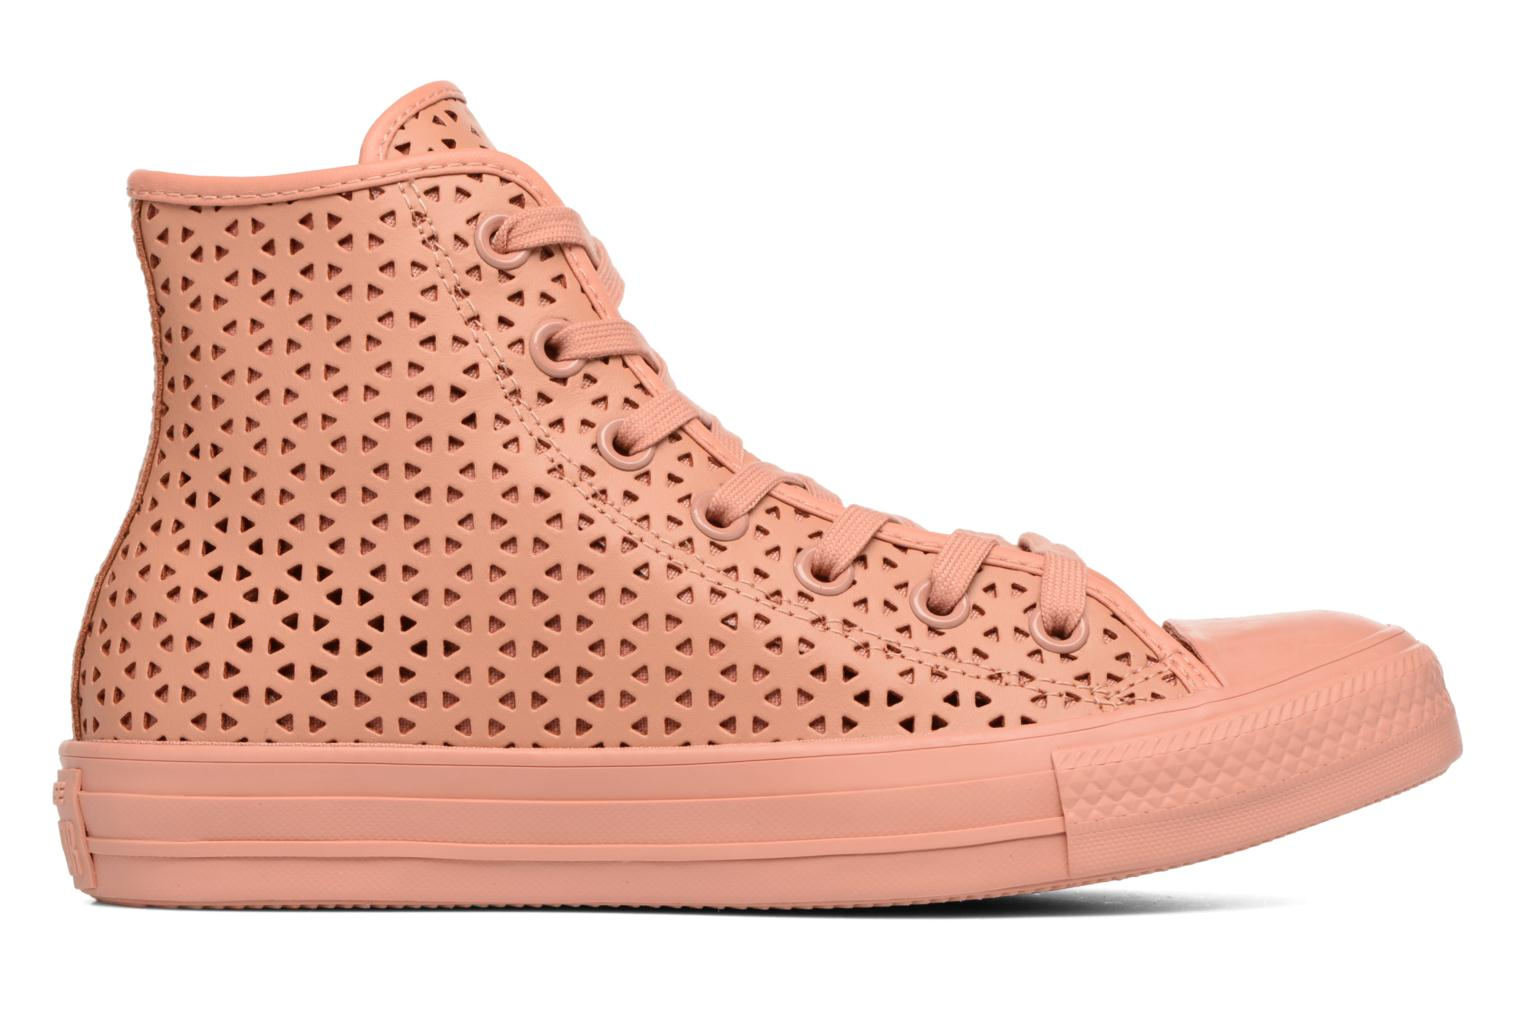 Baskets Converse Chuck Taylor All Star Hi Perforated Canvas Rose vue derrière